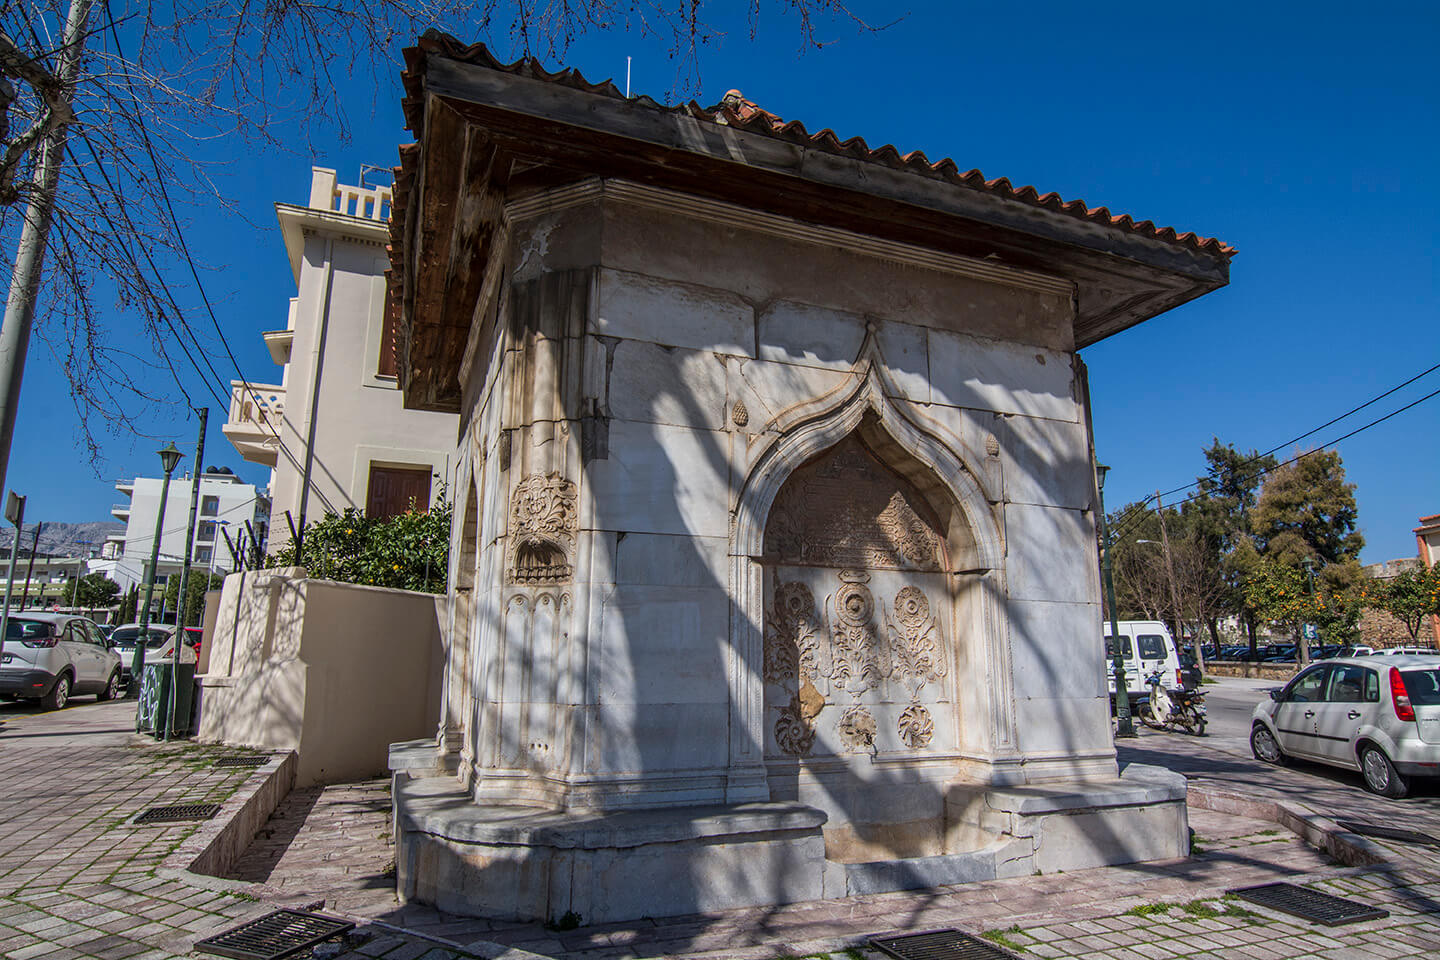 An old turkish fountain in the city of Chios